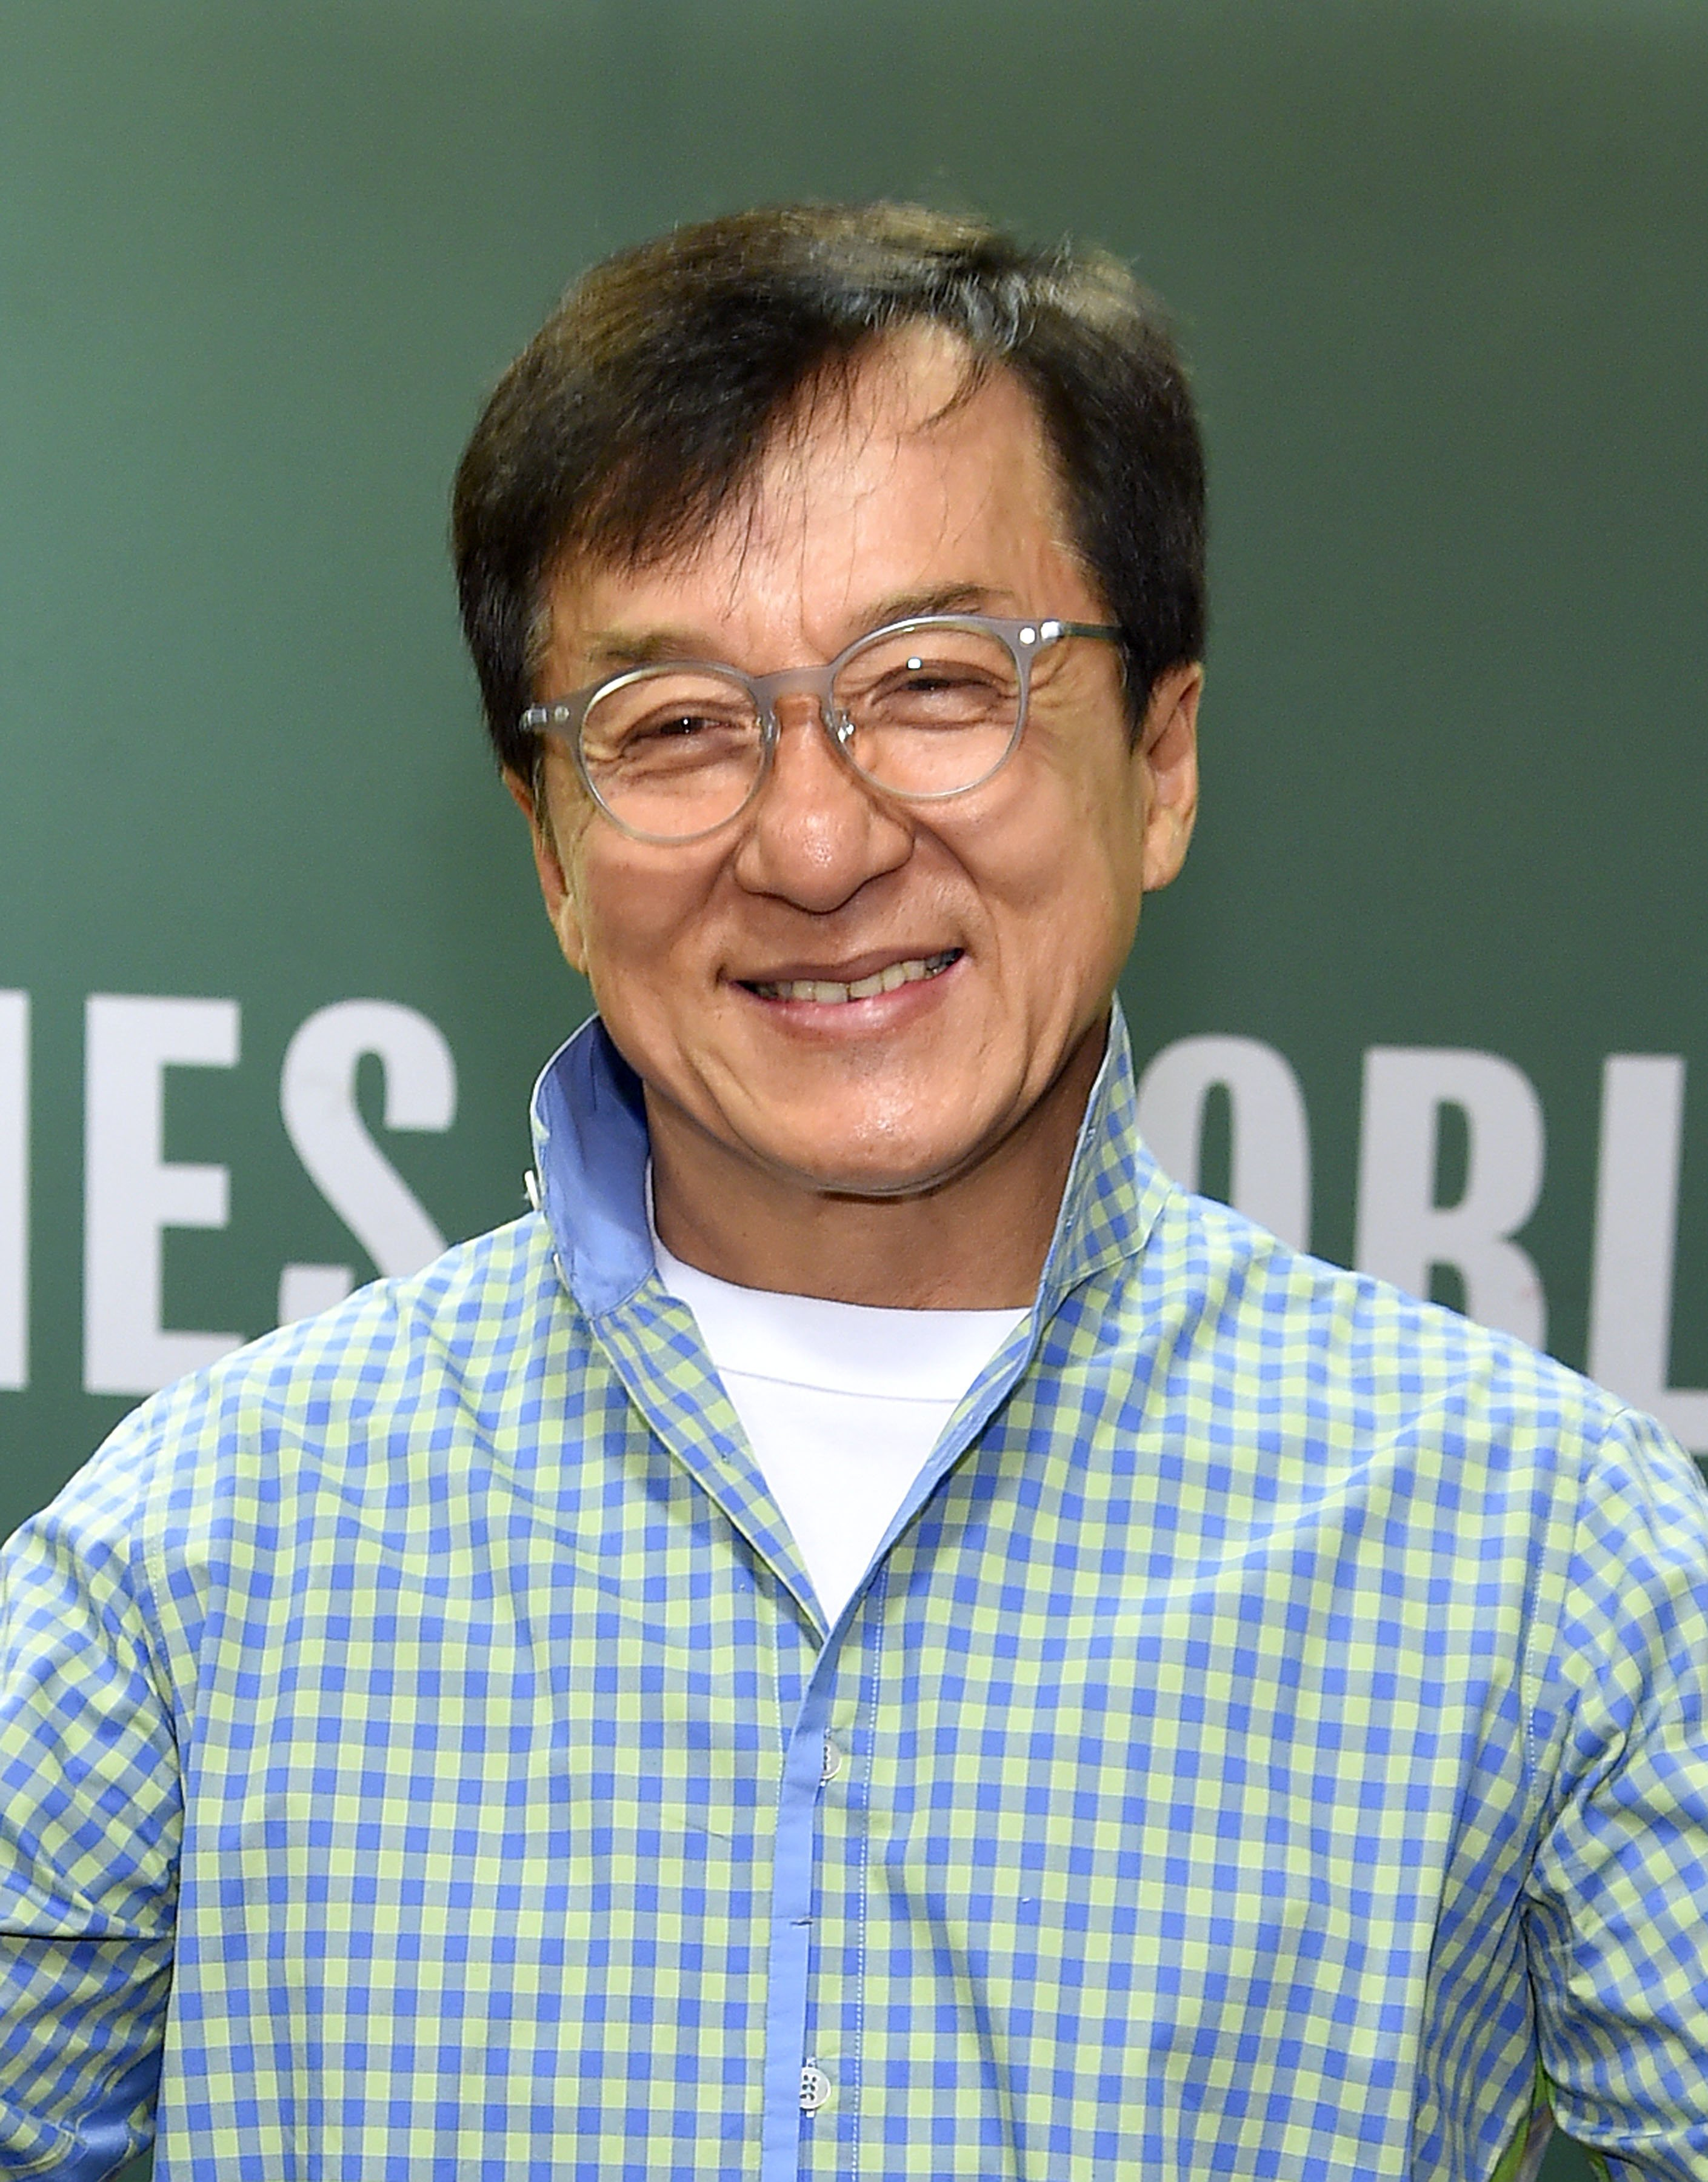 Image Source: Getty Images/Jackie Chan at an event